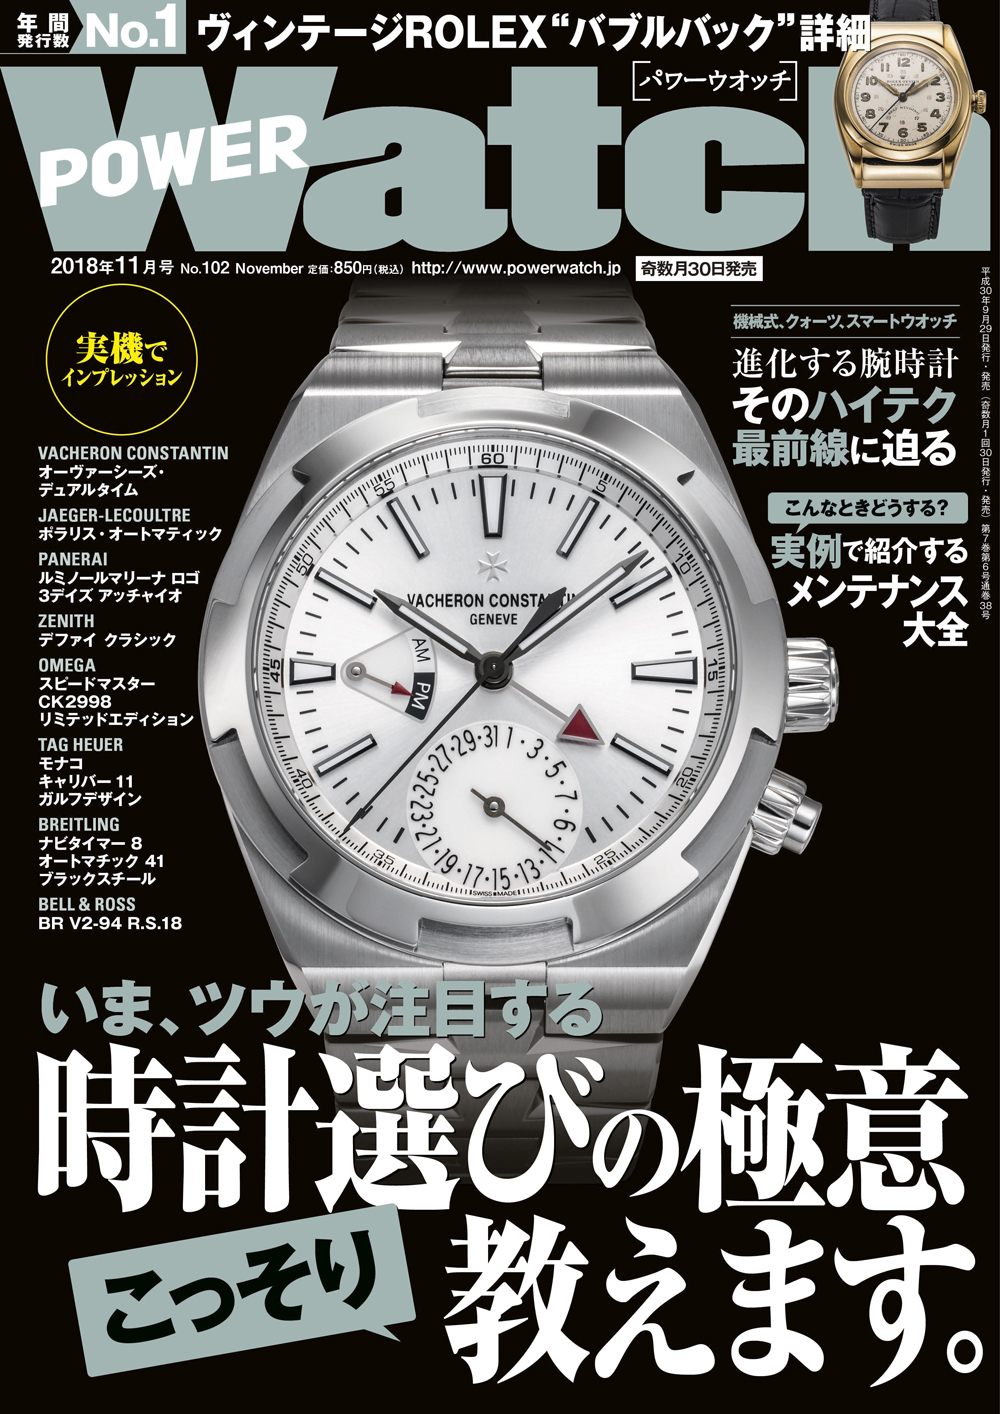 C's-Factory|電子書籍|POWER Watch No.102